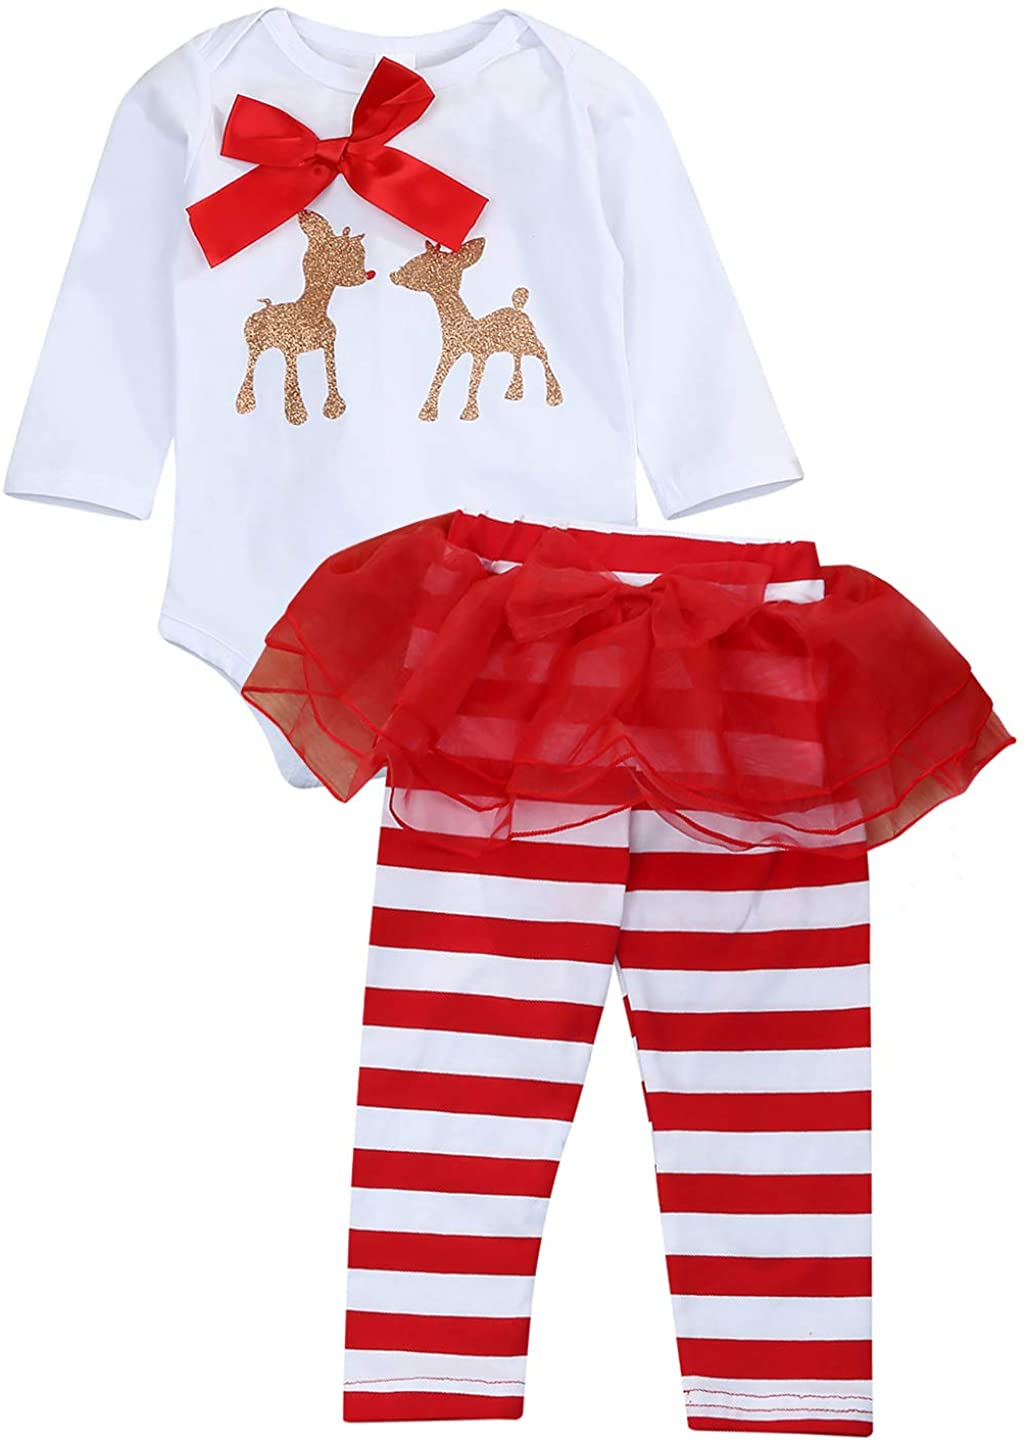 KONIGHT Infant Baby Girls Christmas Outfit Deer Romper with Striped Pants Set